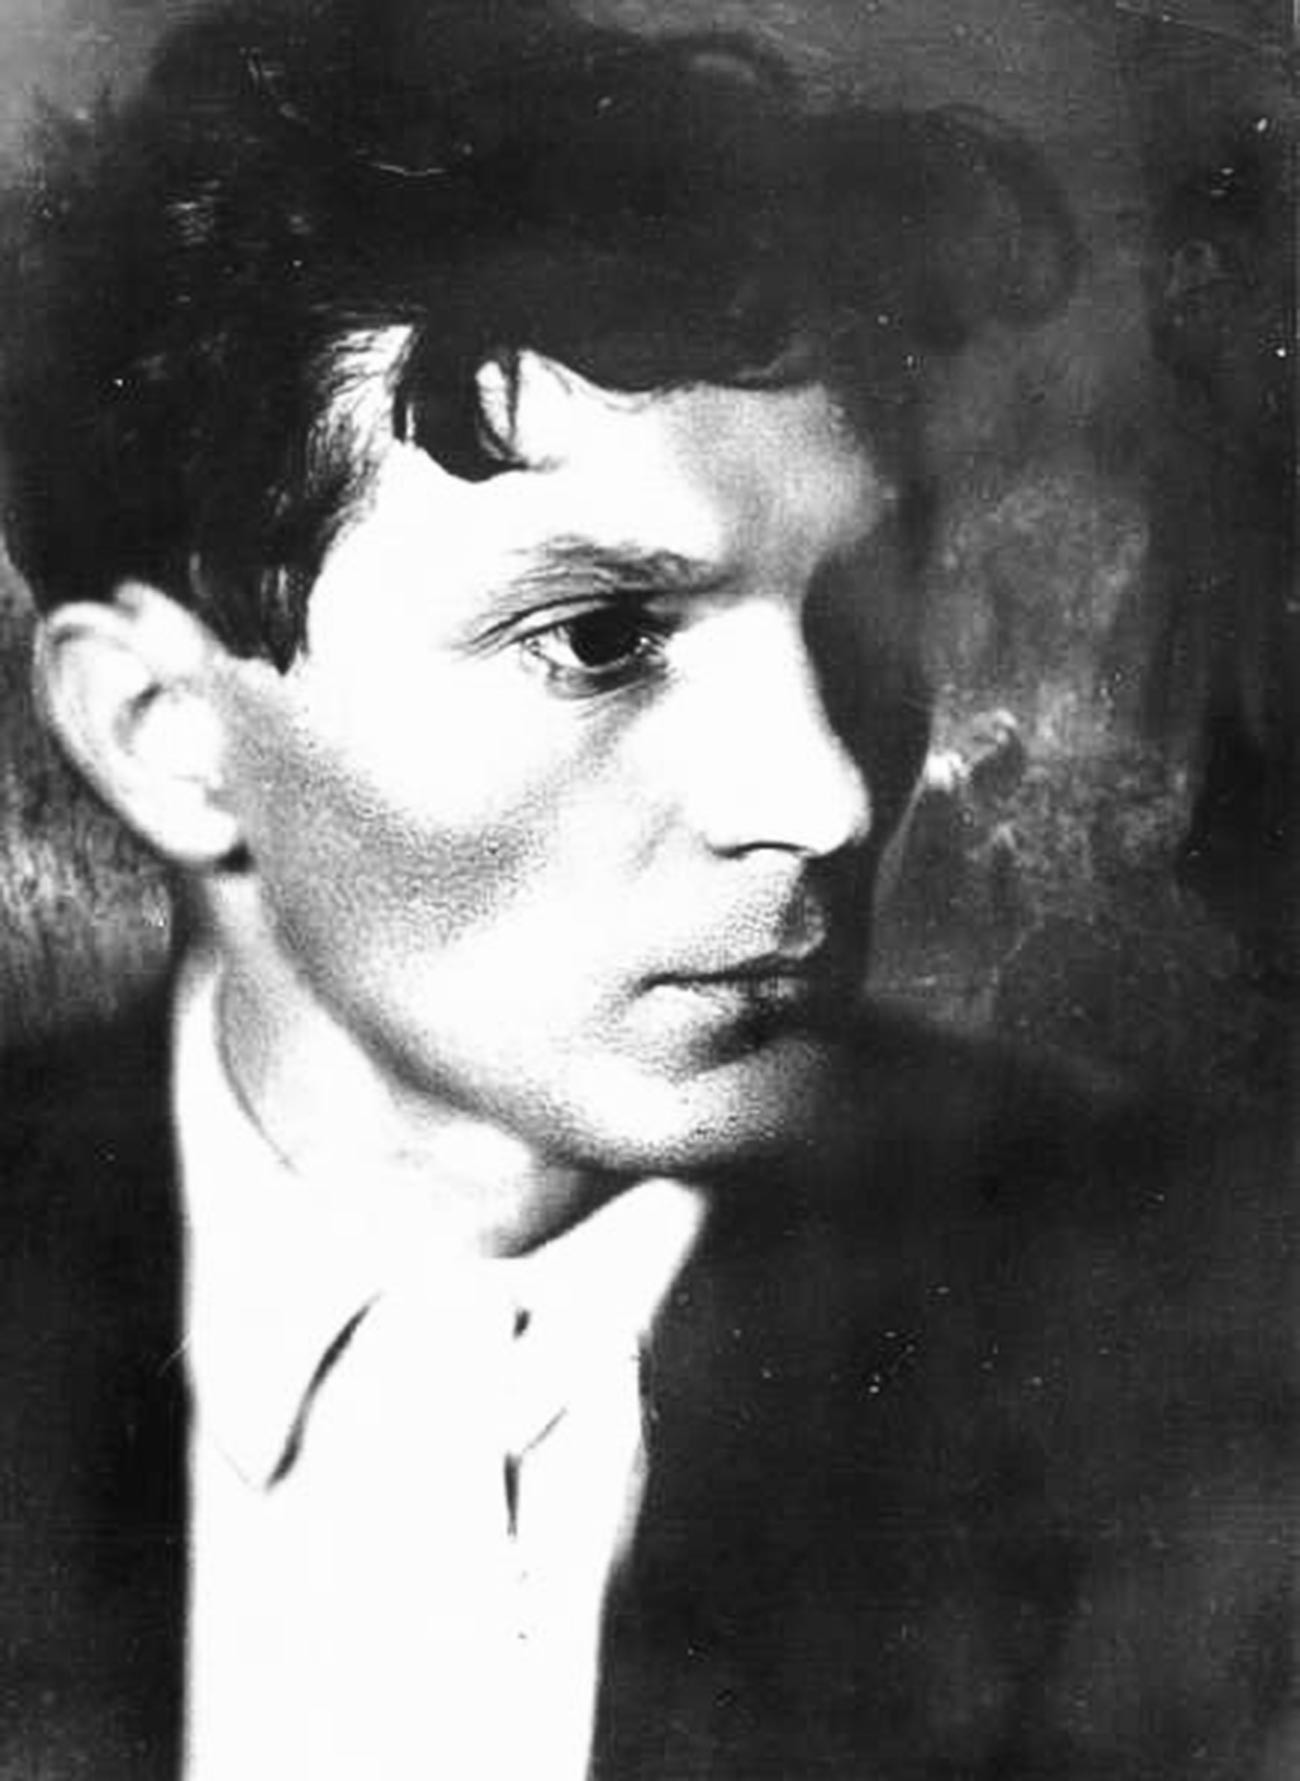 Movie director Vsevolod Pudovkin, author of the iconic silent movie 'Mother', 1925